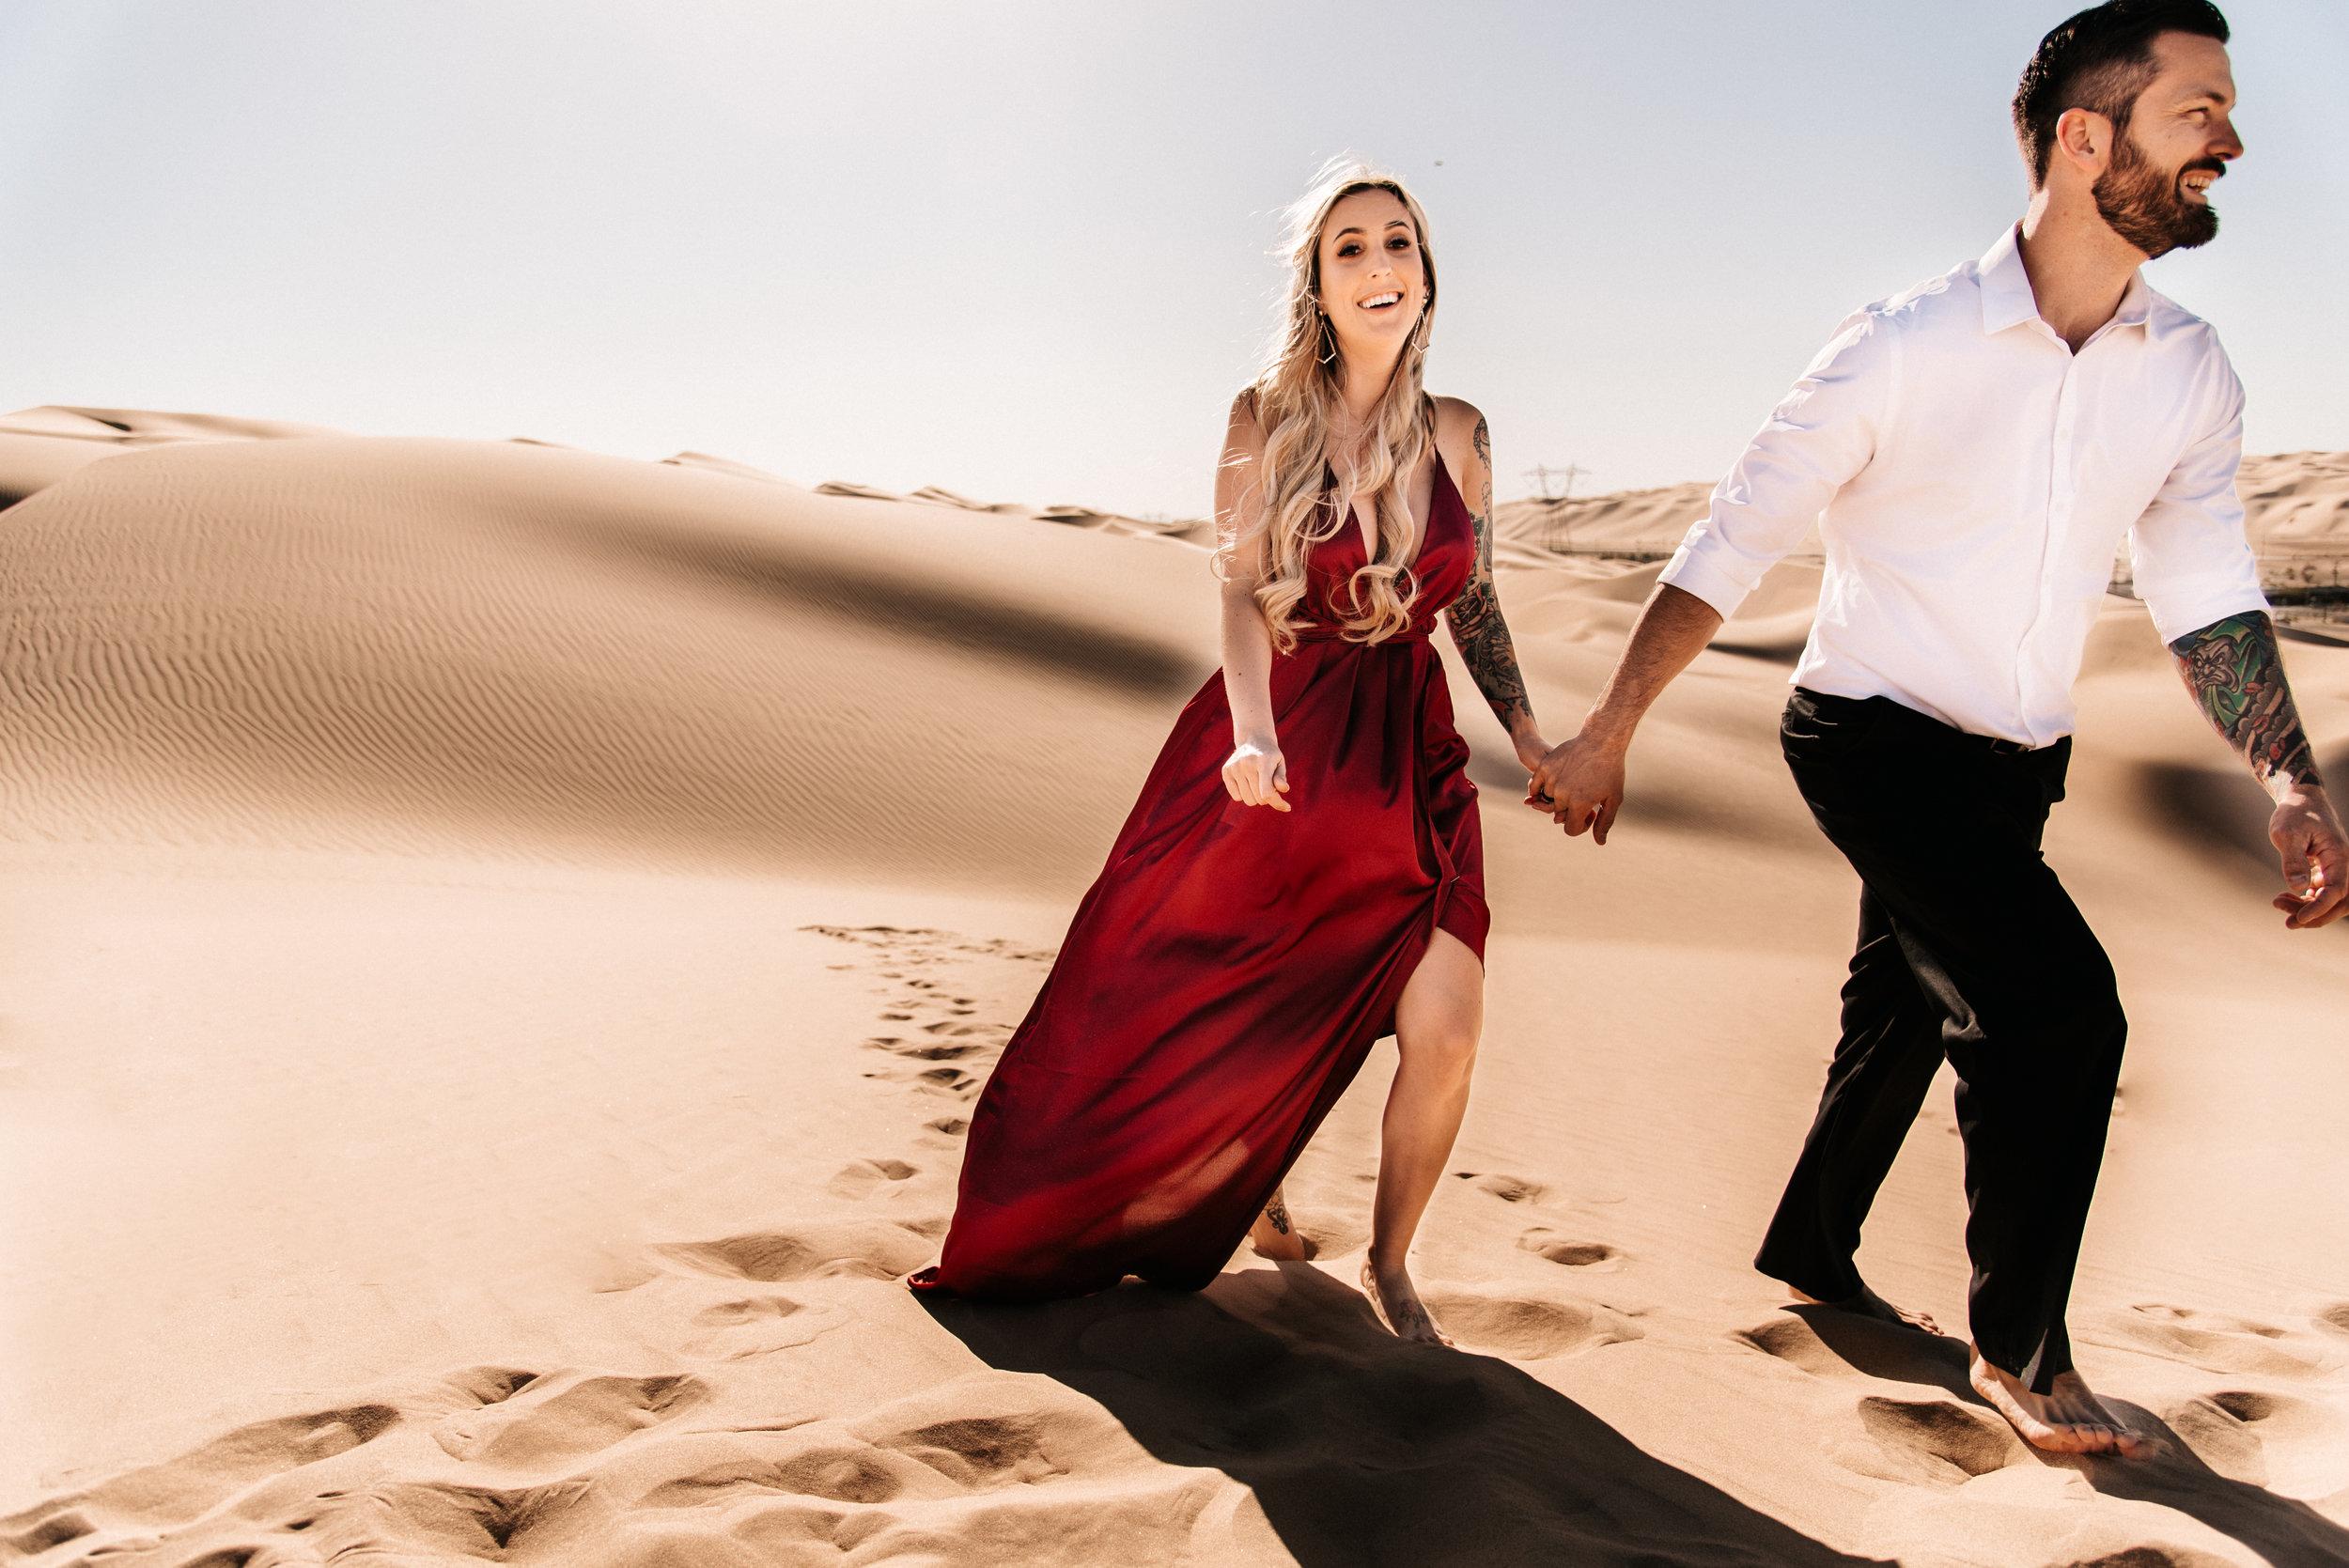 SamErica Studios - Modern San Diego Engagement Photographer - Adventure Engagement Session in Glamis Sand Dunes California-10.jpg